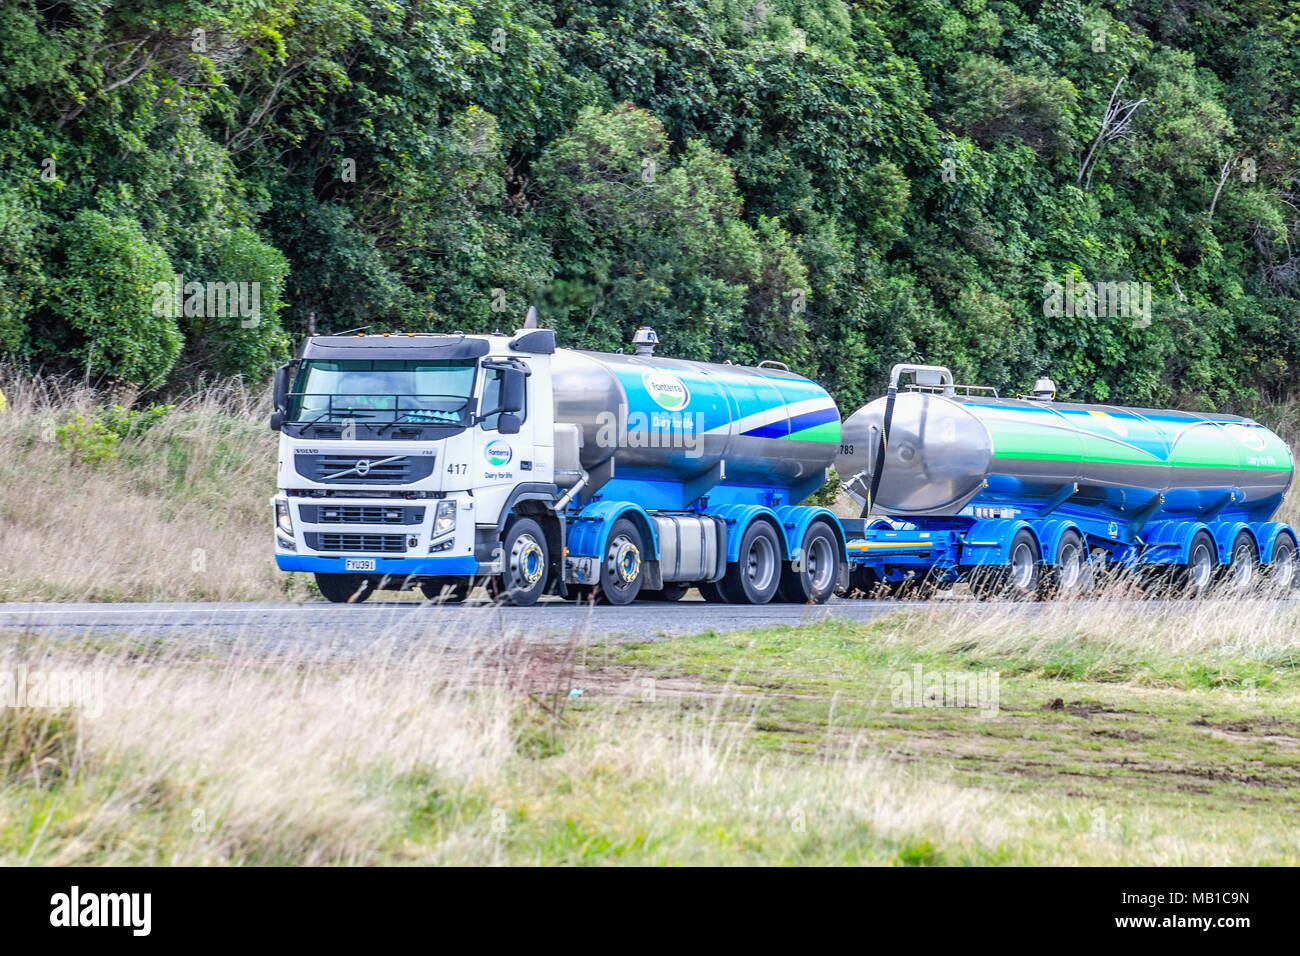 Kaikoura, New Zealand - 26 August, 2016: A Fonterra Milk Tanker travelling along State Highway 1 prior to the November 14th earthquake that same year  - Stock Image